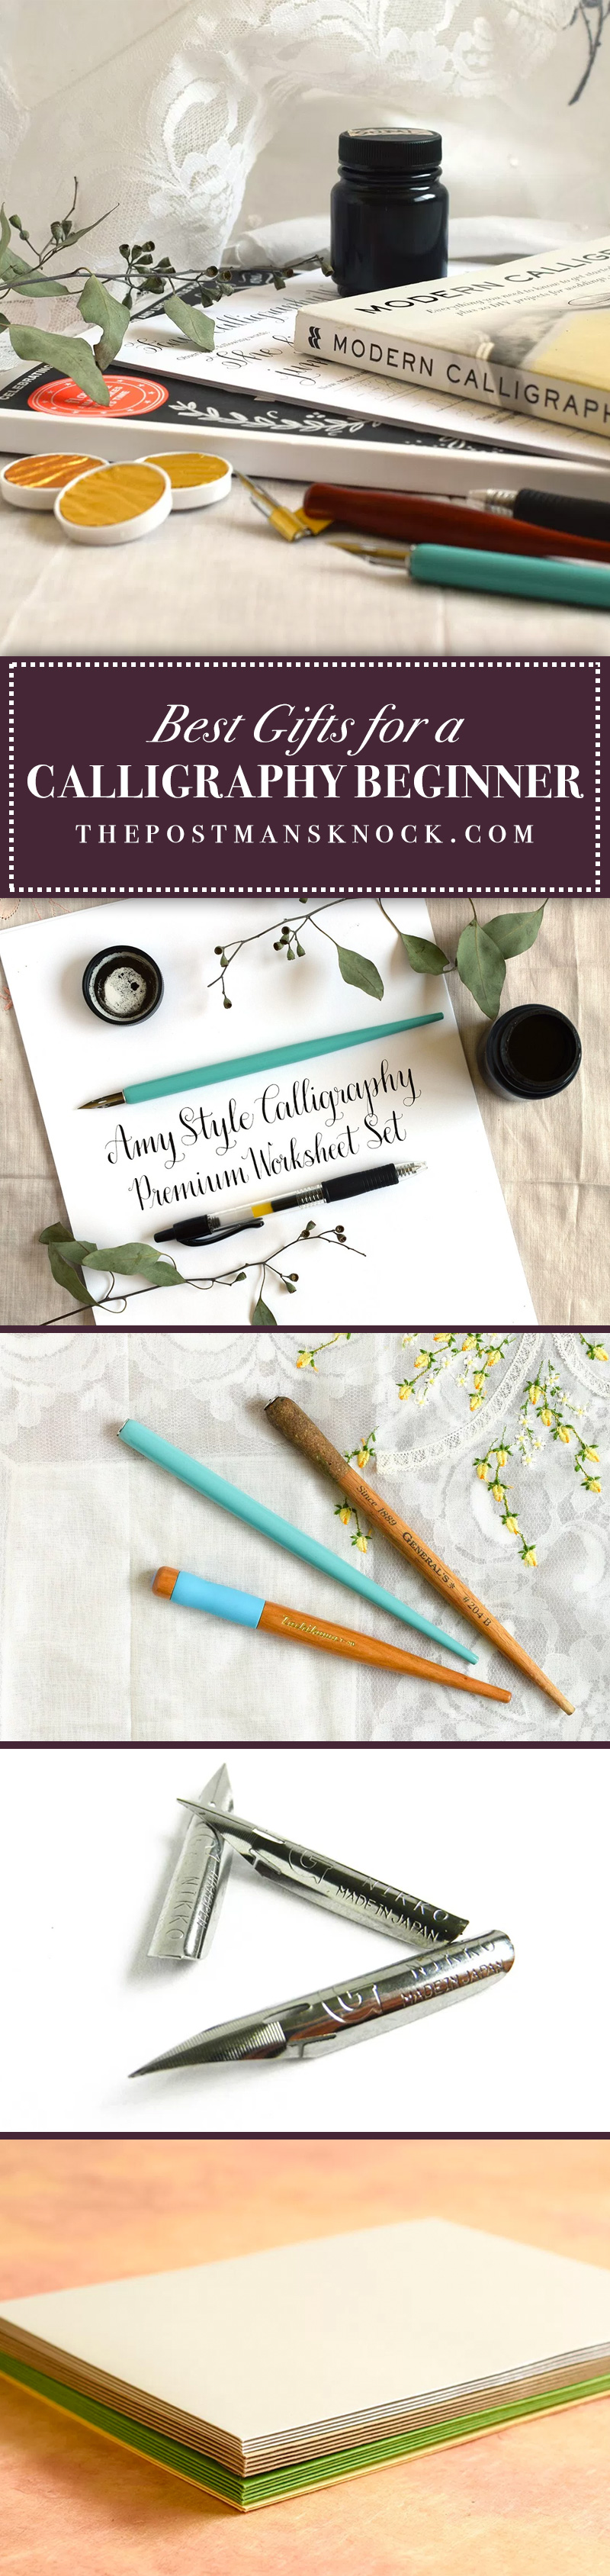 Assemble a starter kit that any calligraphy beginner will love!